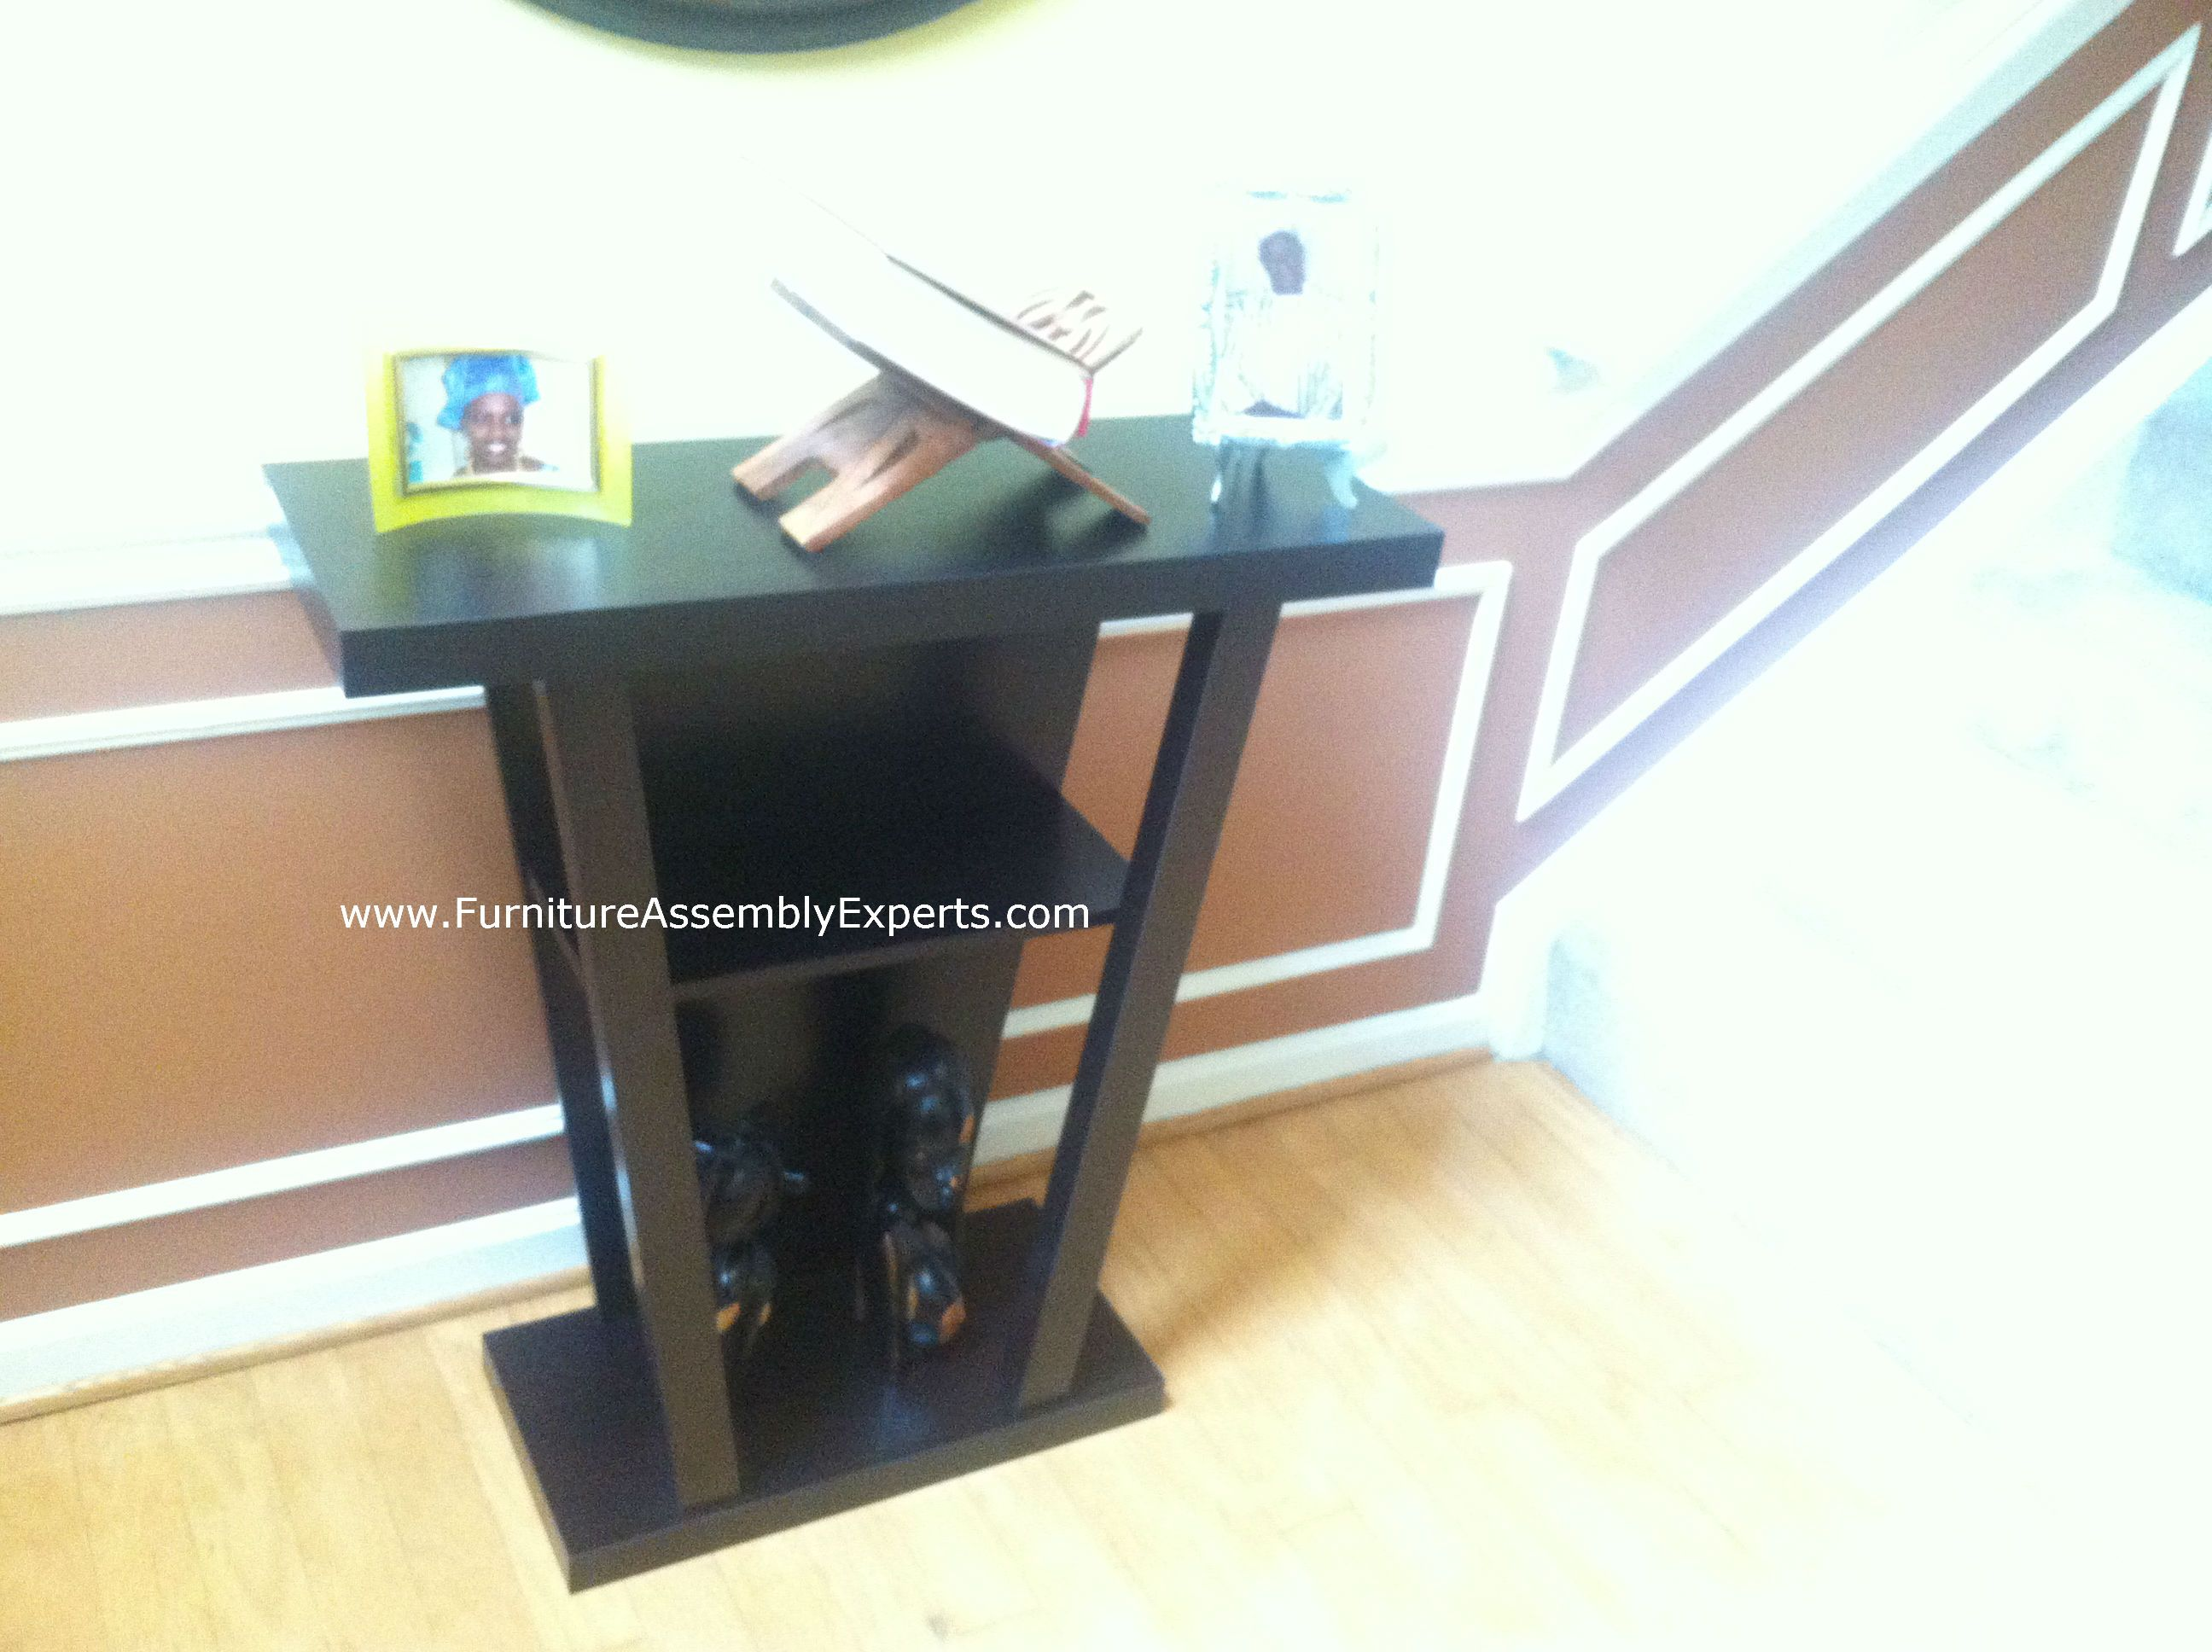 Wayfair Console Wall Table Assembled In Silver Spring MD For A Customer  Moving In By Furniture